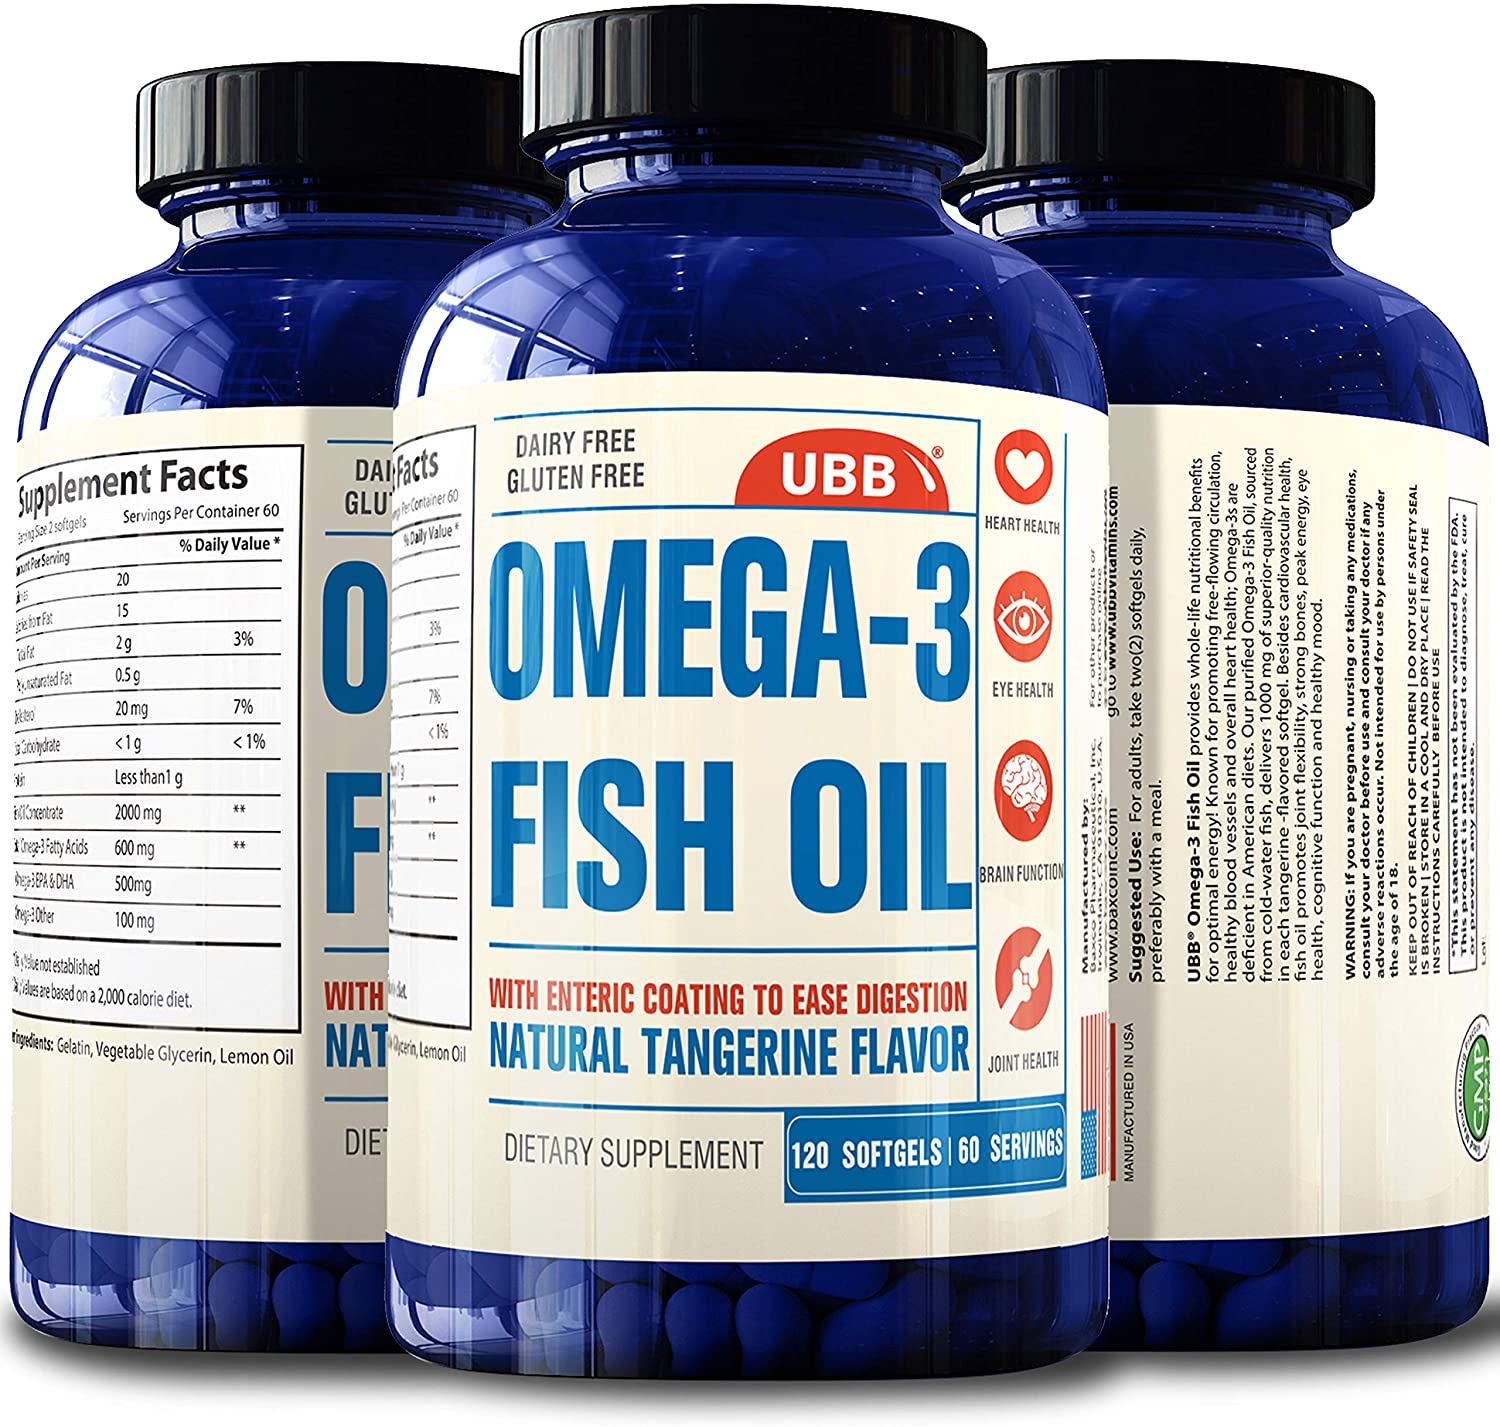 Omega 3 Fish Oil Extra Strength, Burpless - 2600mg Combination of The Best and Original NSF-Certified Pharmaceutical Grade Pills - Joint Support, Immune, Heart Health, Brain, Eyes, Skin (120 Count)